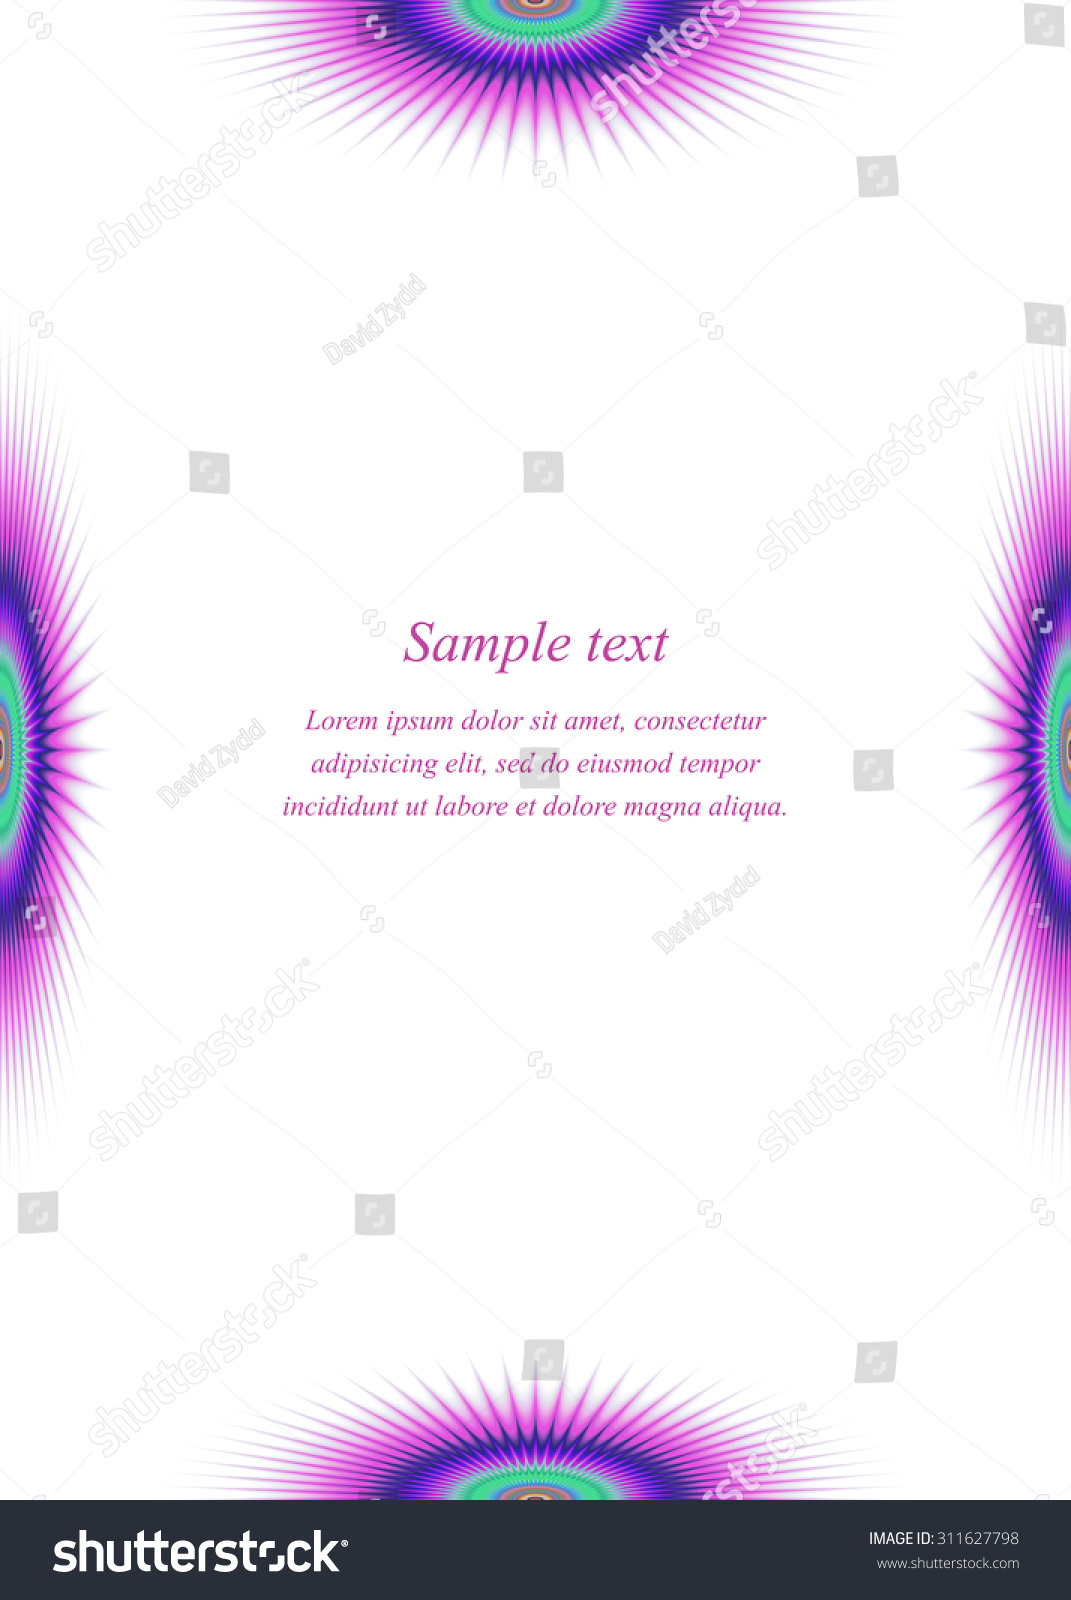 Colorful Page Border Design Template Invitation, Greeting, Presentation,  Card, Letter, Paper  Paper Border Designs Templates